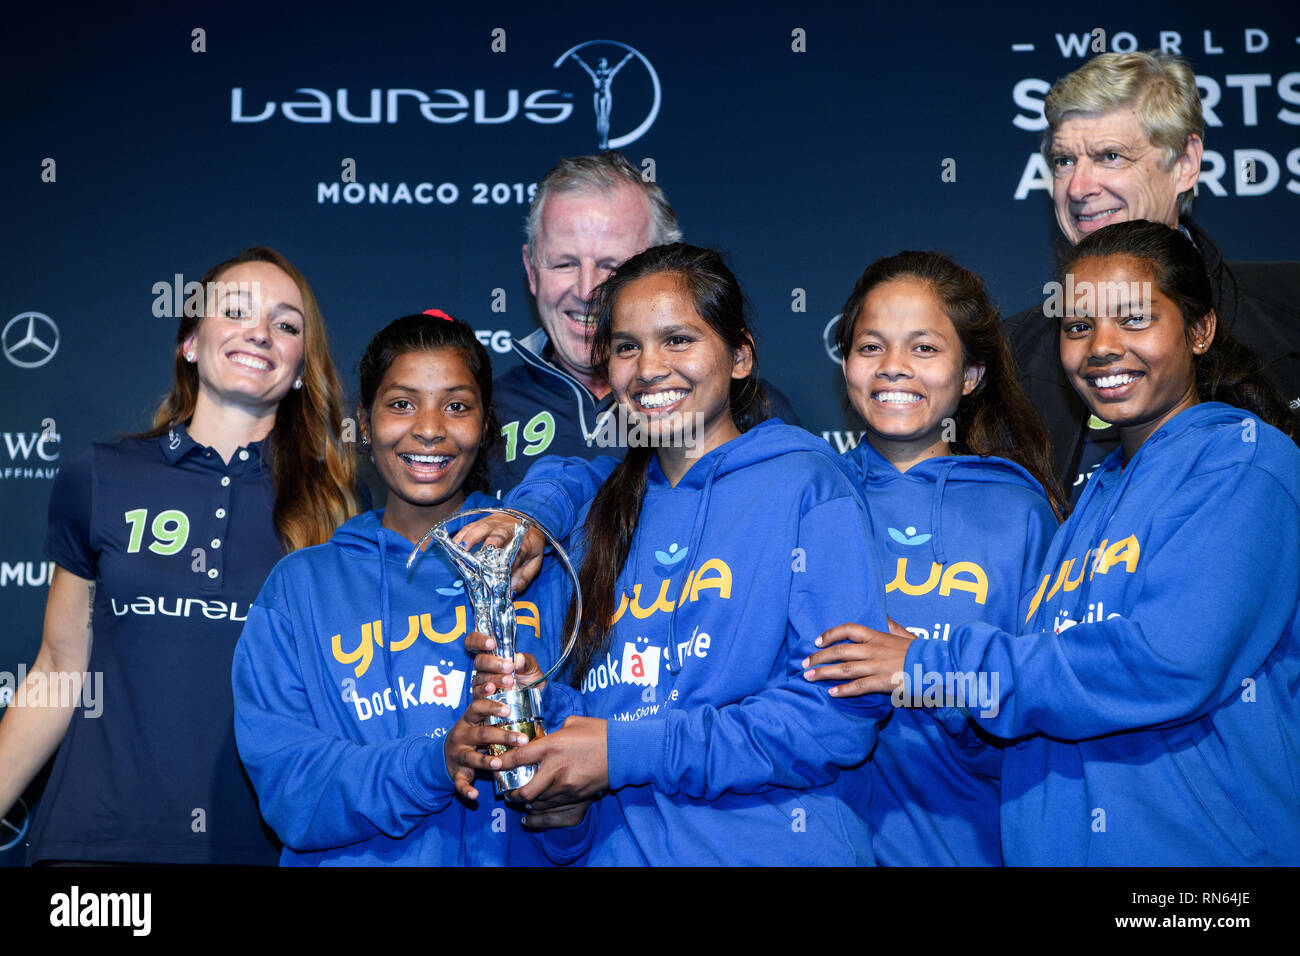 Monaco. 17th Feb, 2019. Prize: Laureus Sport for Good Award 2019: Trophy winner is the Indian social sport project Yuwa: Back left to right: Kosovare Asllani, Sean Fitzpatrick (Chairman Laureus), Arsene Wenger. In front are the winners left to right Radha, Neeta, Konika and Hema, football players of the project Yuwa. GES/Sports General/Laureus World Sports Awards 2019, 17.02.2019 Sports: Laureus World Sports Awards 2019, February 17, 2019 | usage worldwide Credit: dpa/Alamy Live News - Stock Image